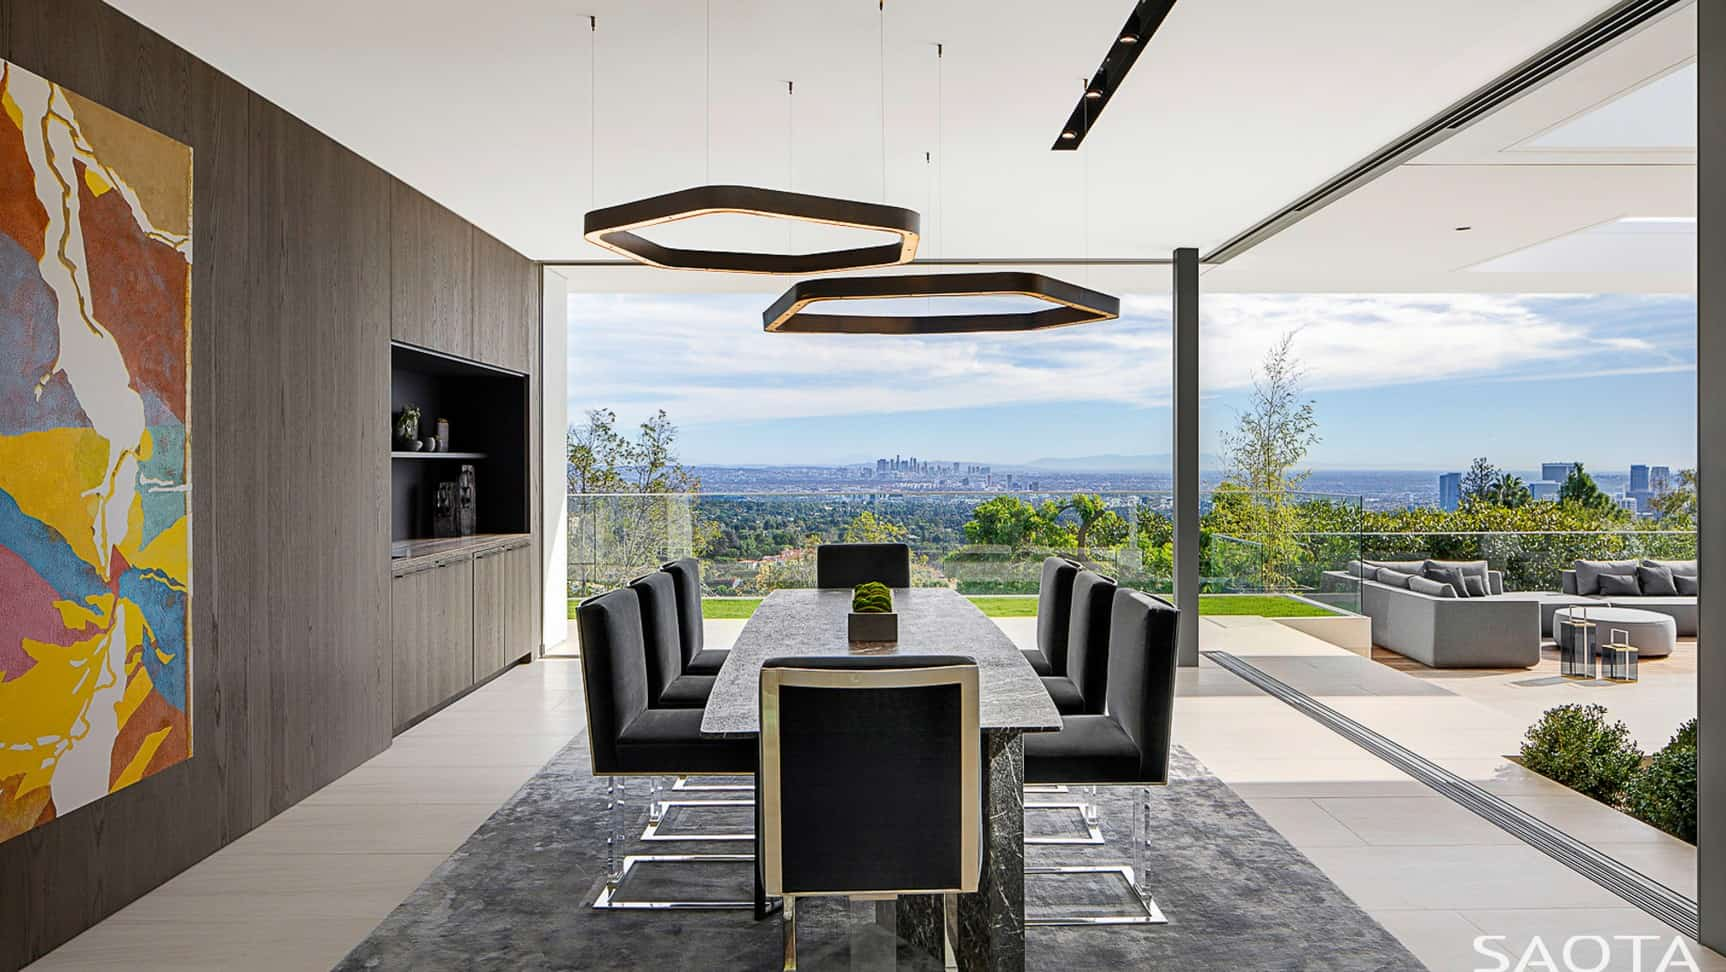 Sleek dining room boasts a pair of suspended hexagon lighting fixtures that hung over a rectangular dining table and black chairs. It has a full height glazing where you can clearly enjoy the impressive outdoor scenery.